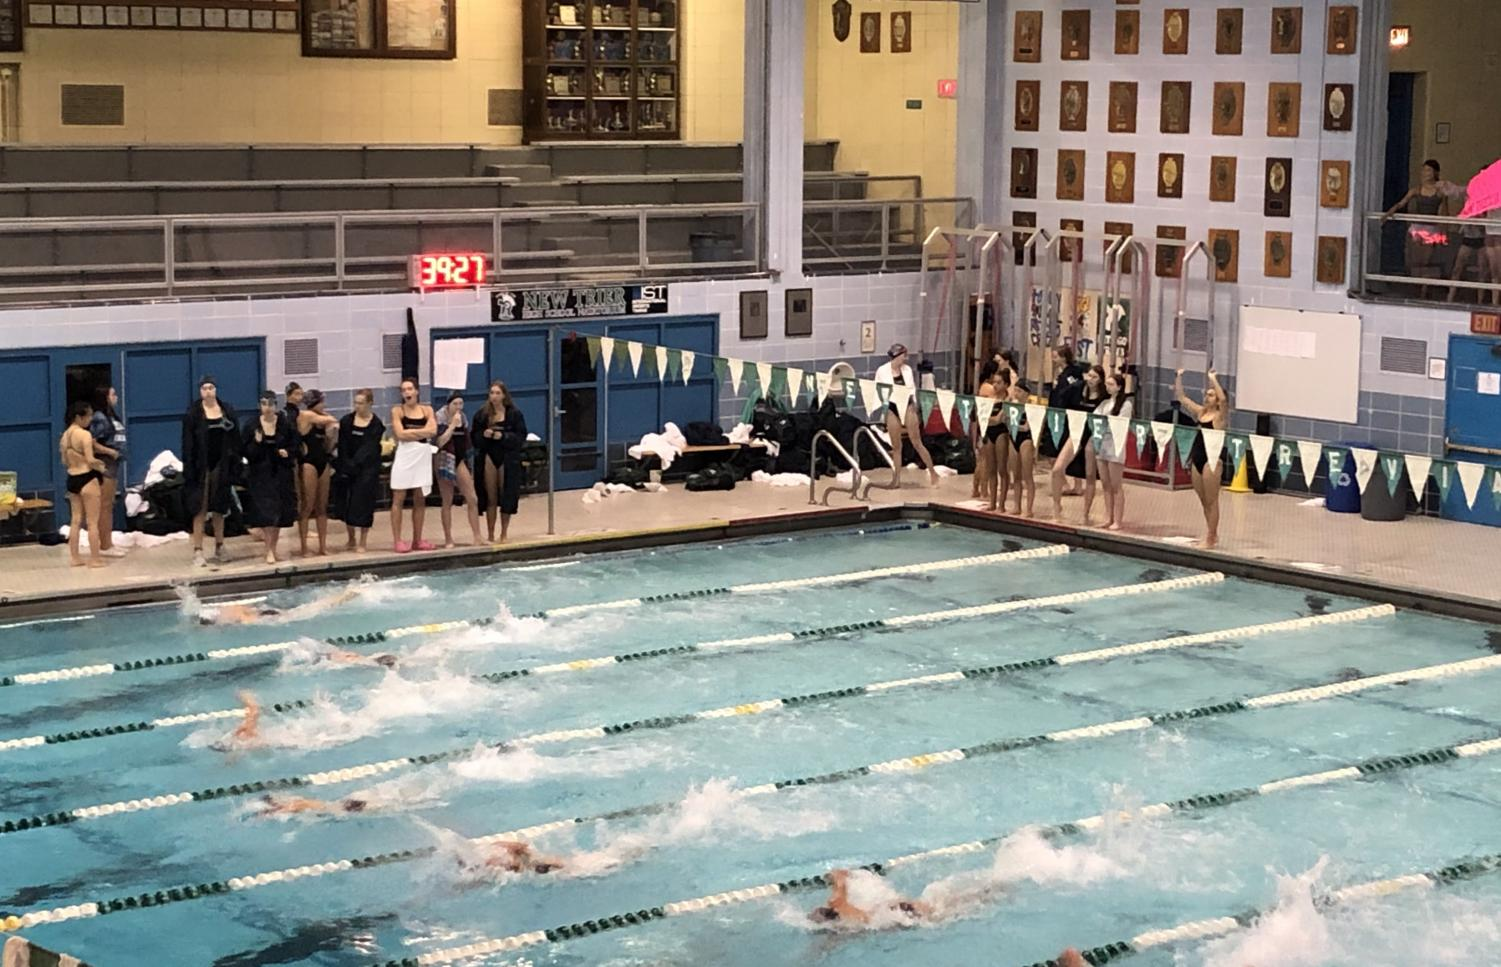 Trevian and Rambler swimmers compete in the varsity 200-meter freestyle relay at the Sept. 20 meet